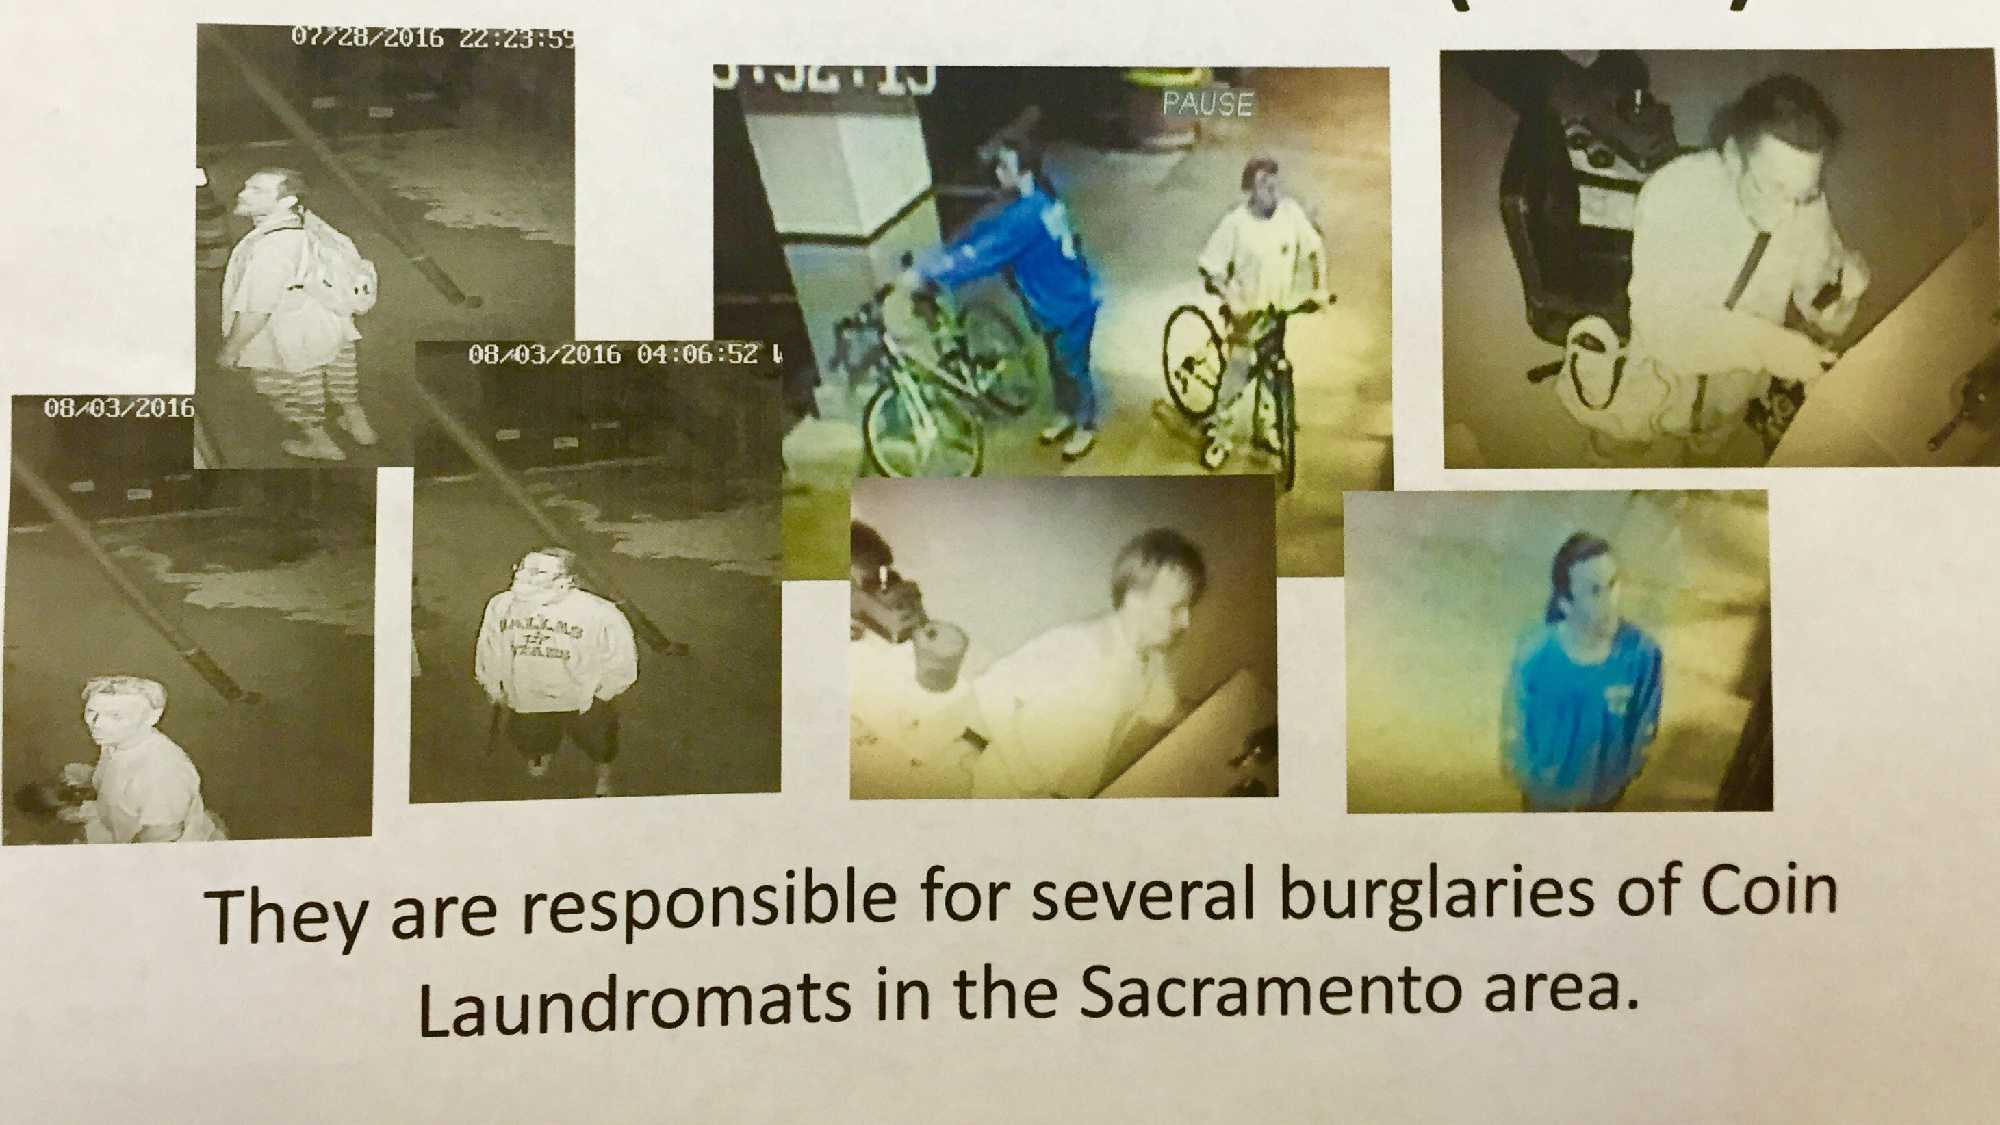 A reward flier shows surveillance photos of several burglary suspects wanted in connection to Sacramento-area laundromat break-ins.